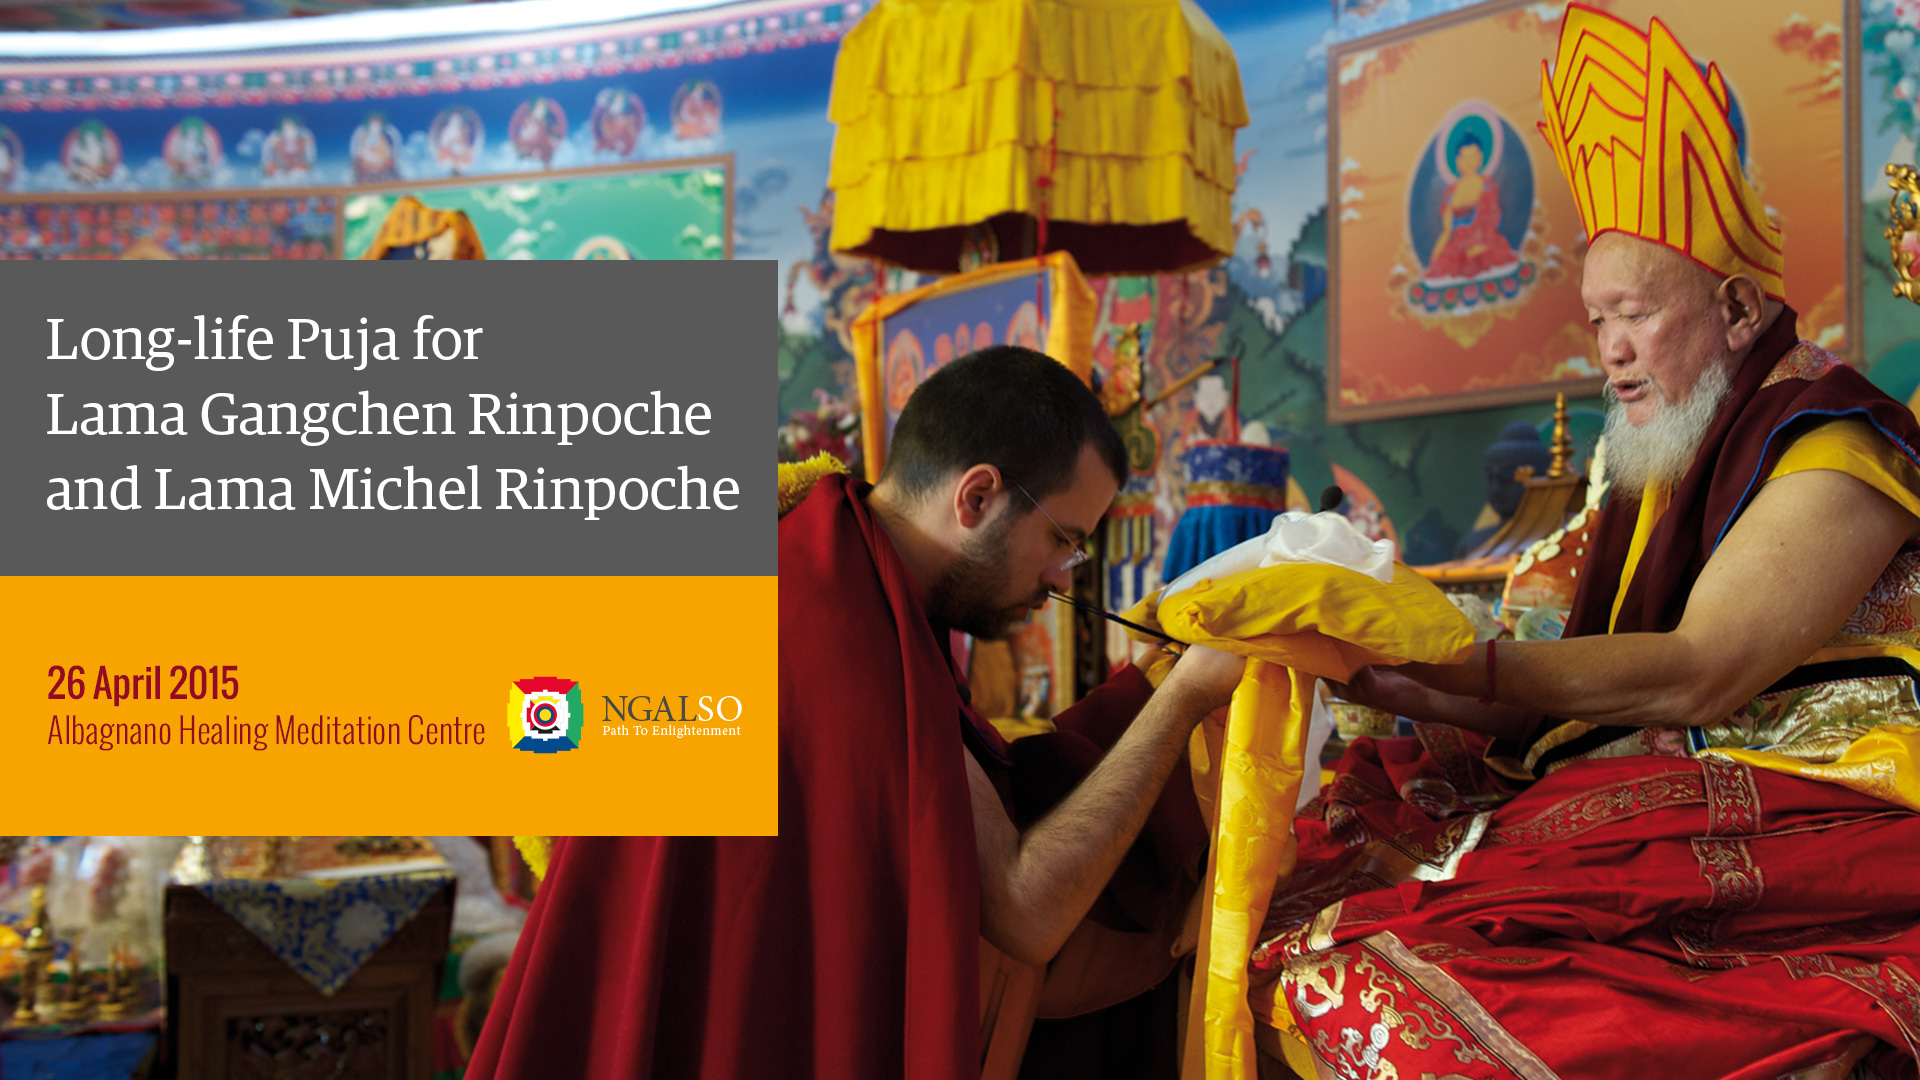 Long Life Puja for Lama Gangchen Rinpoche and Lama Michel Rinpoche – 26 April 2015